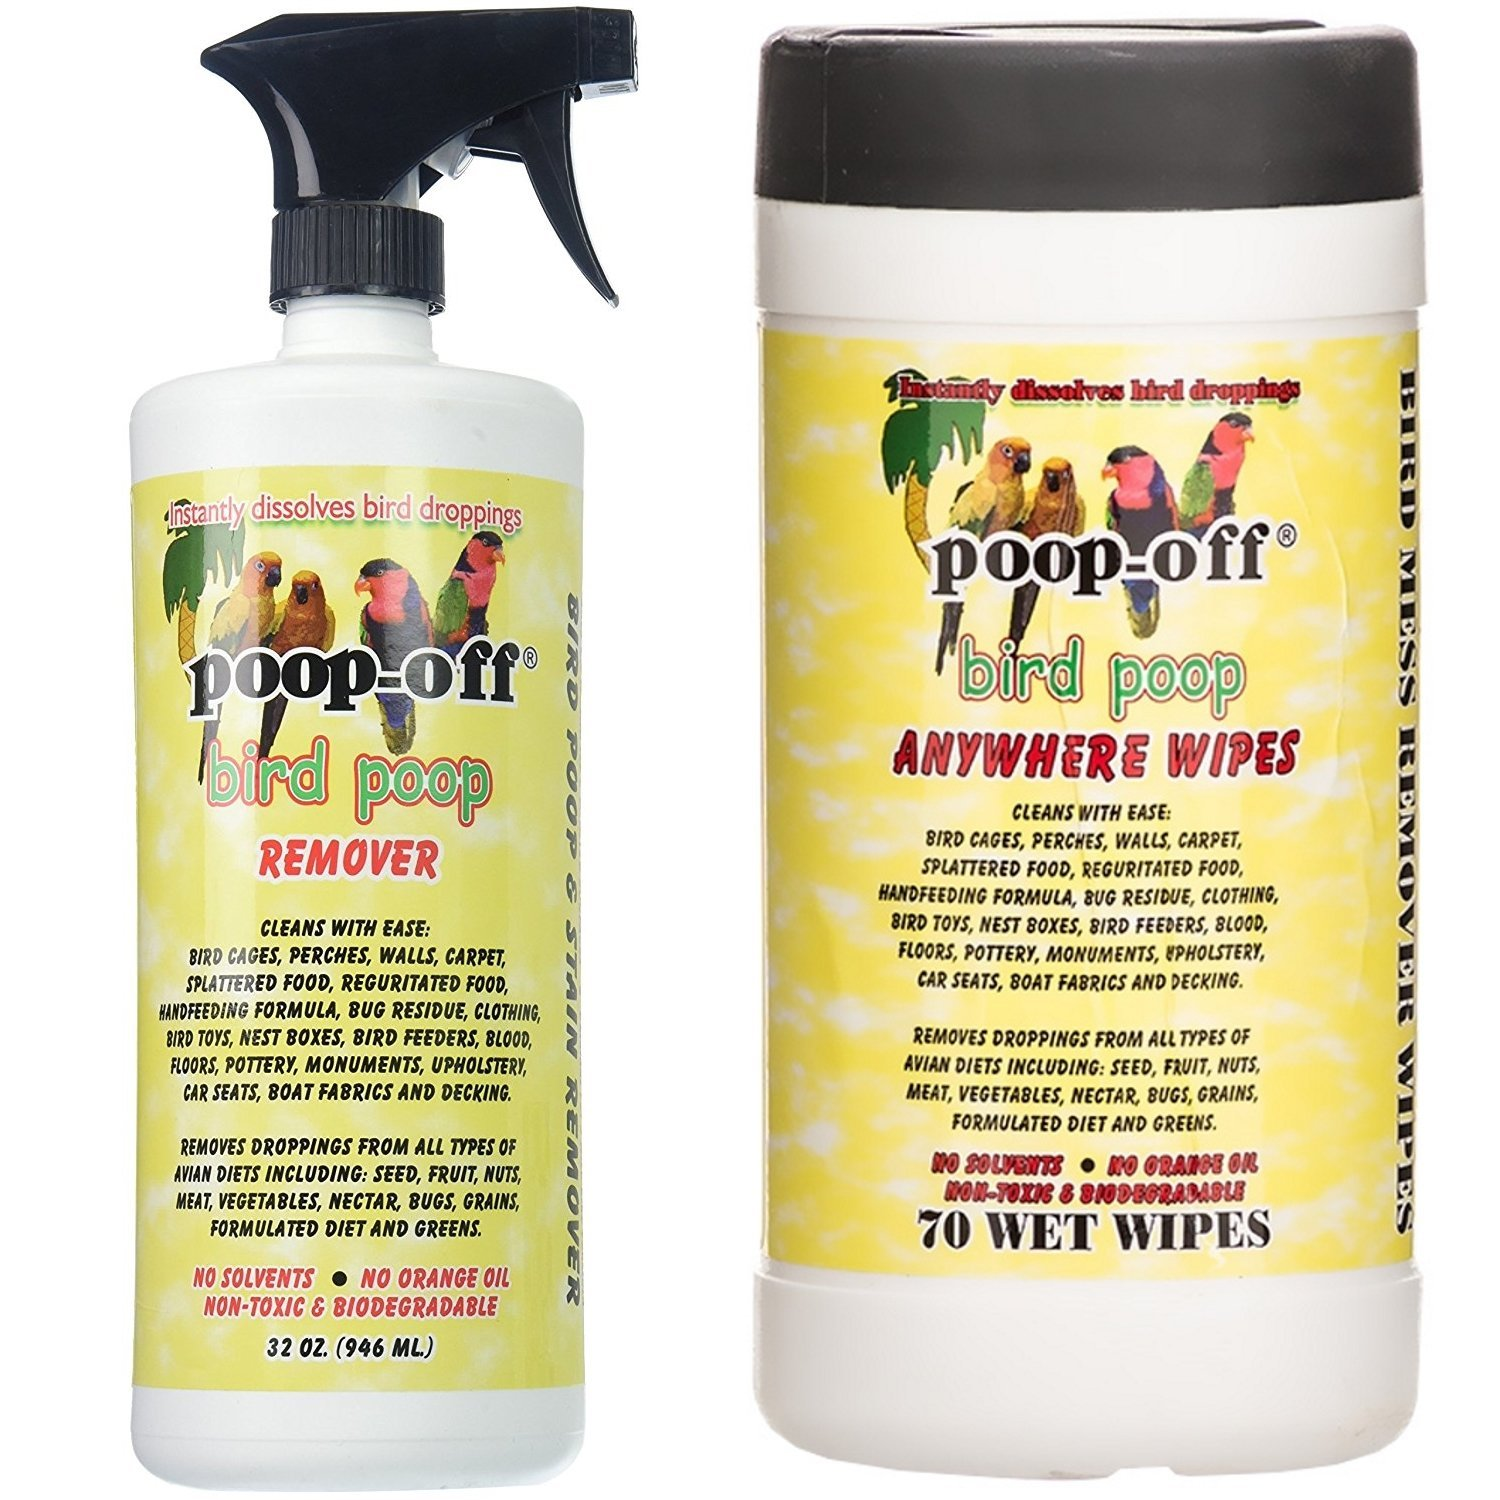 Poop-Off Bird Poop Remover Spray and Anywhere Cleaning Wipes, 32-Ounce Spray and 70 Wipes